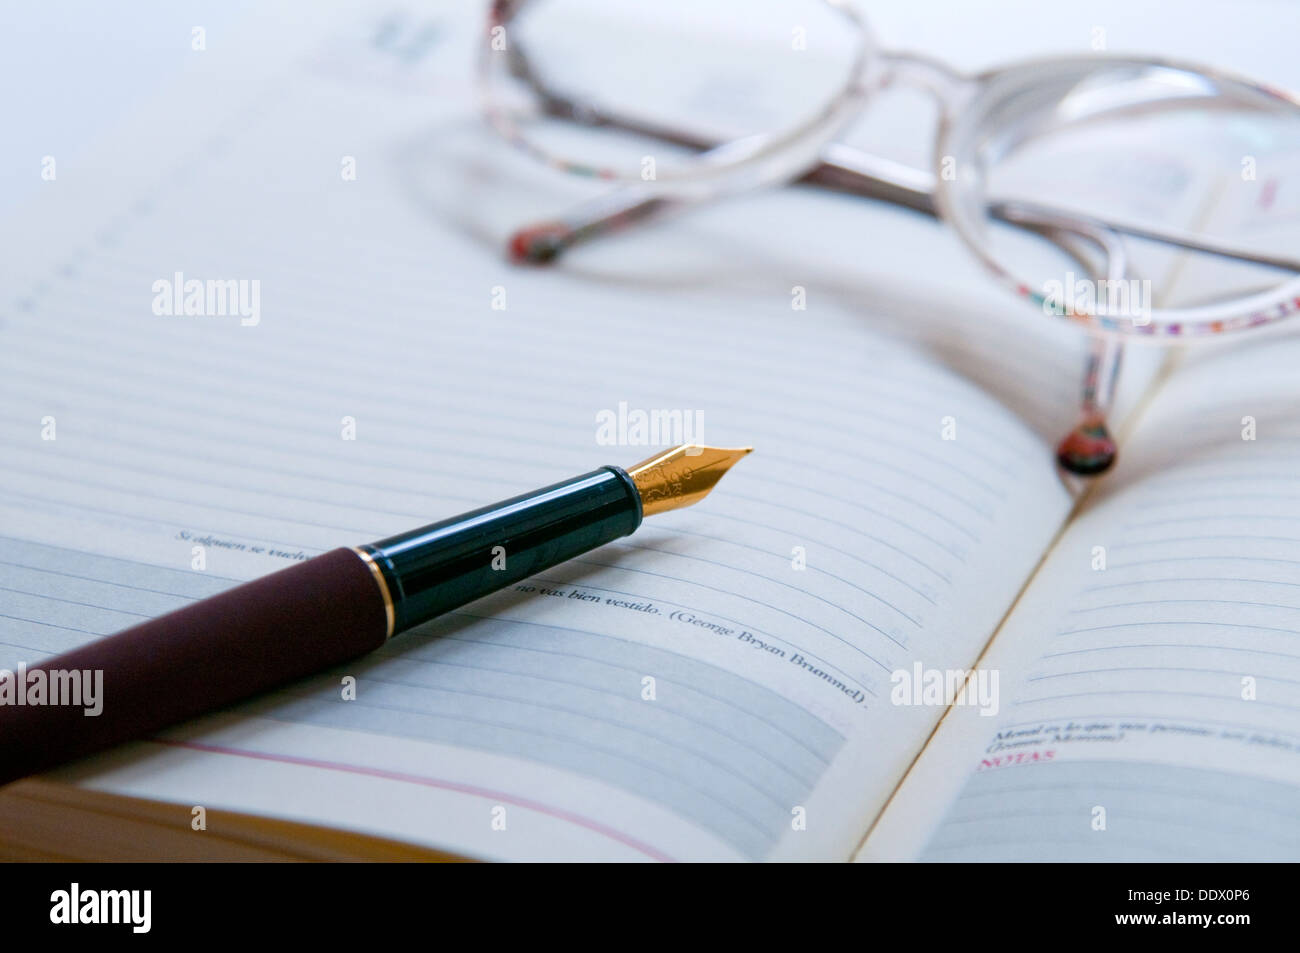 Fountain pen and eyeglasses on a diary. Close view. - Stock Image